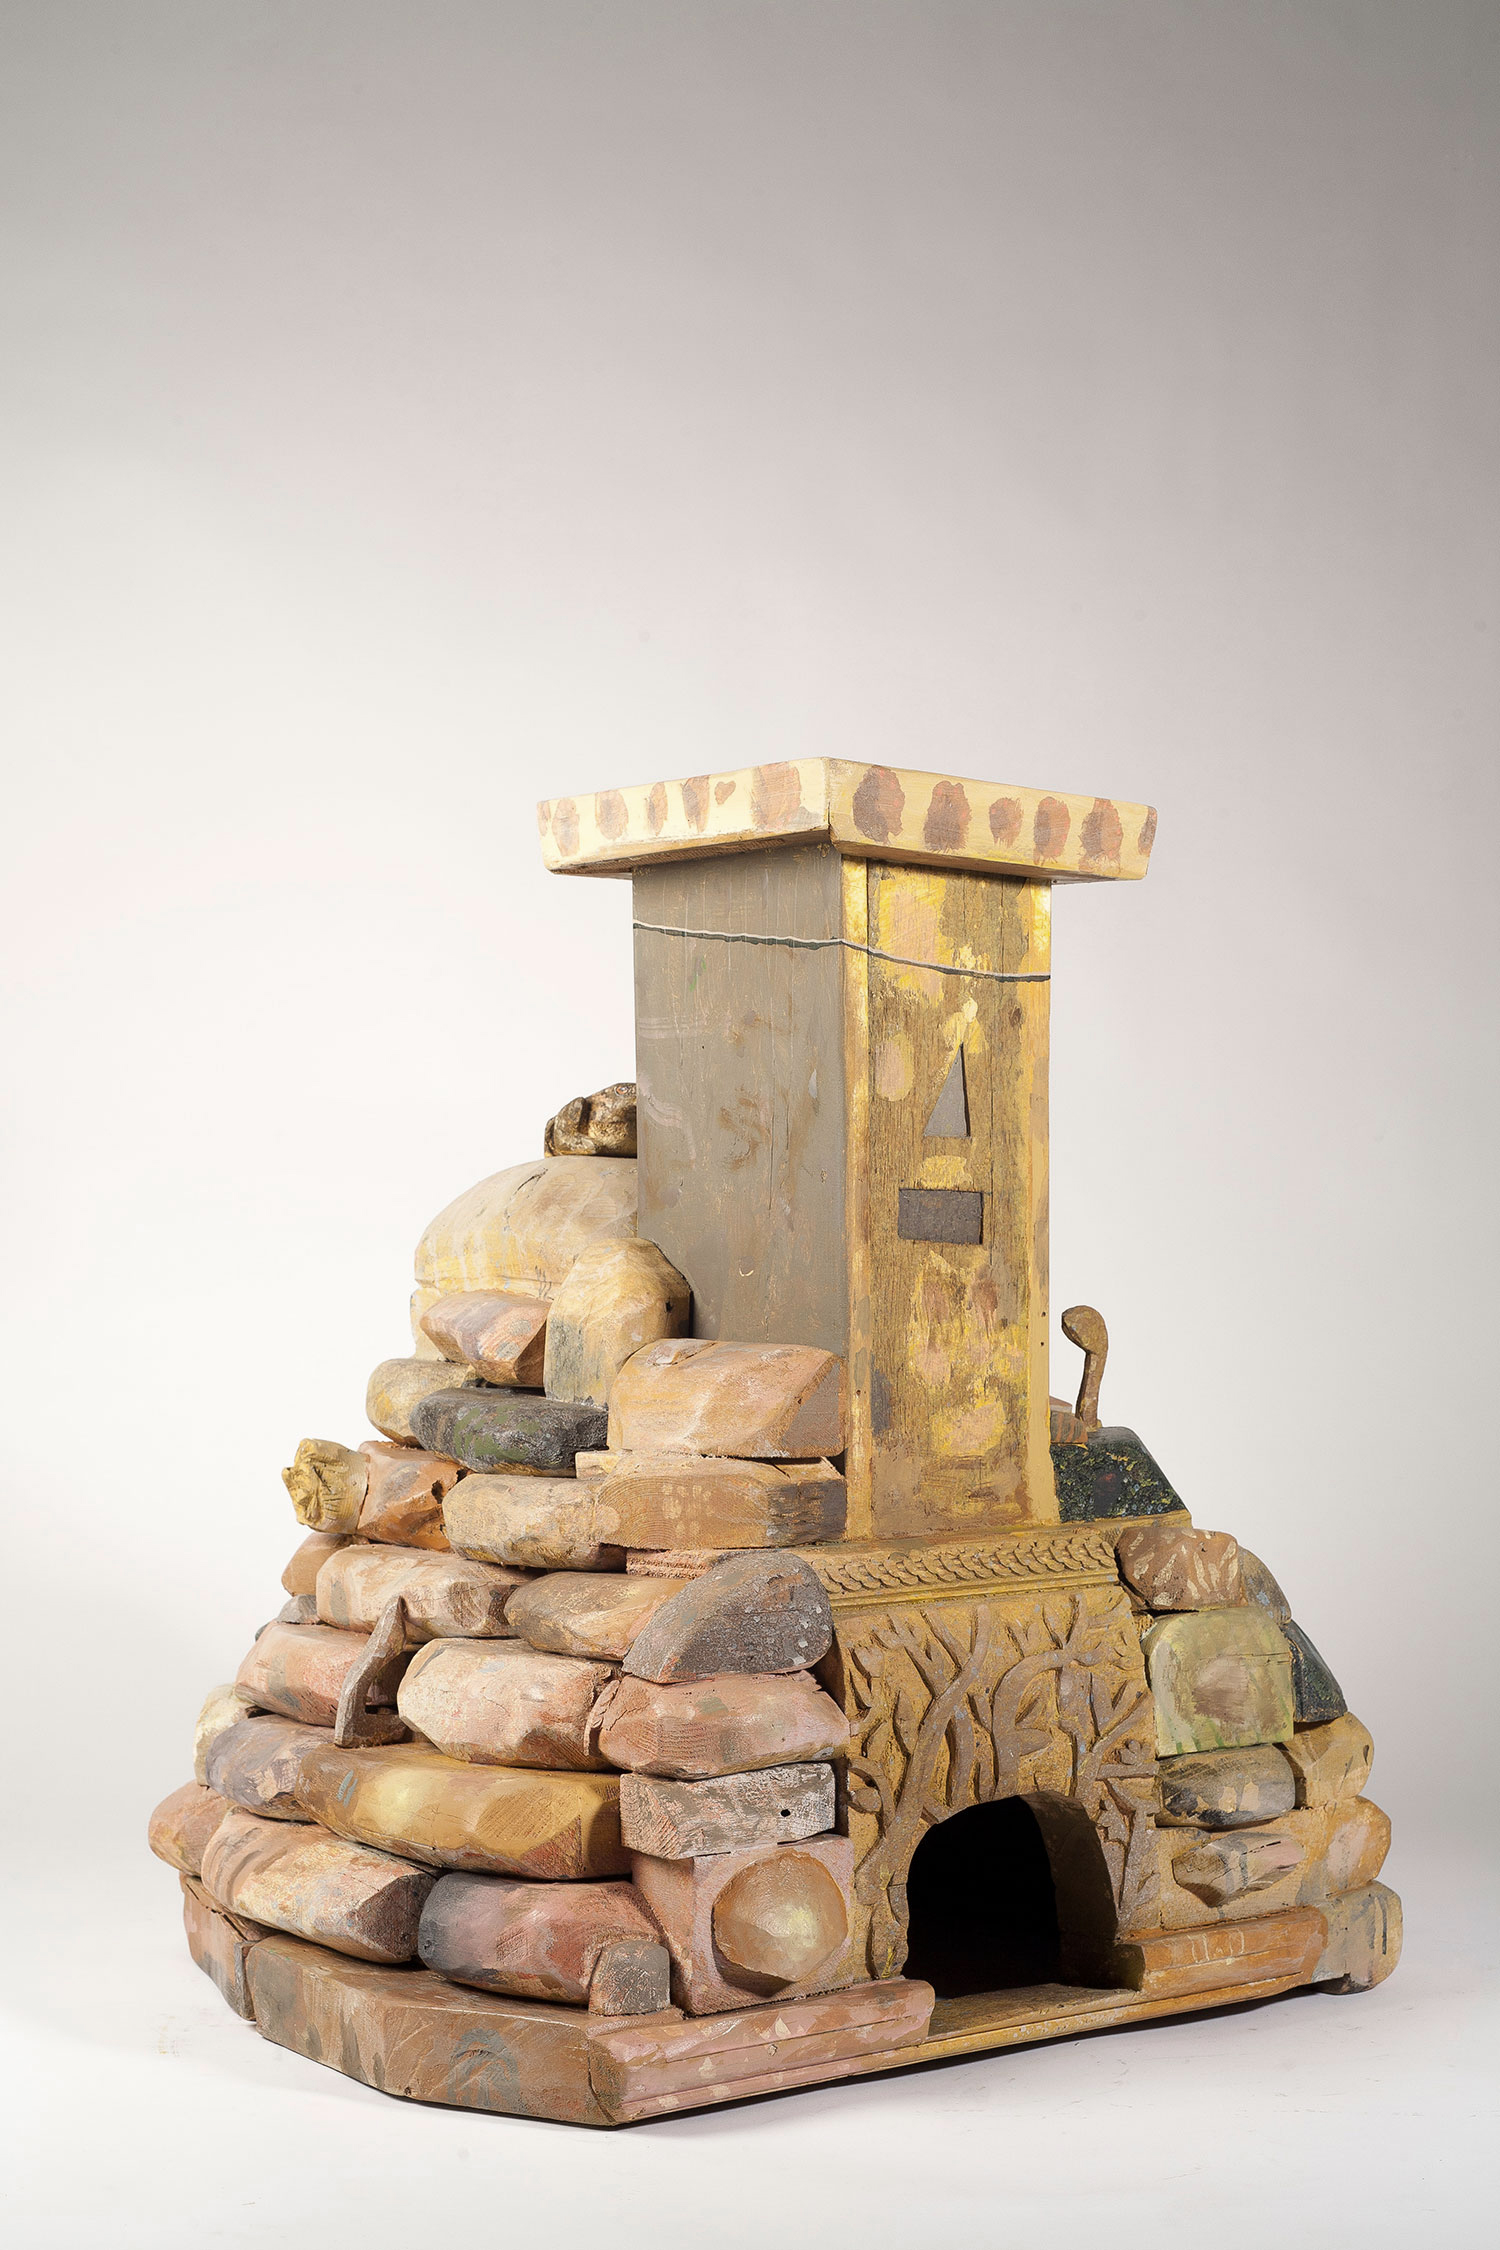 Bread oven, wood and paint,26x24x26 inches,2016.